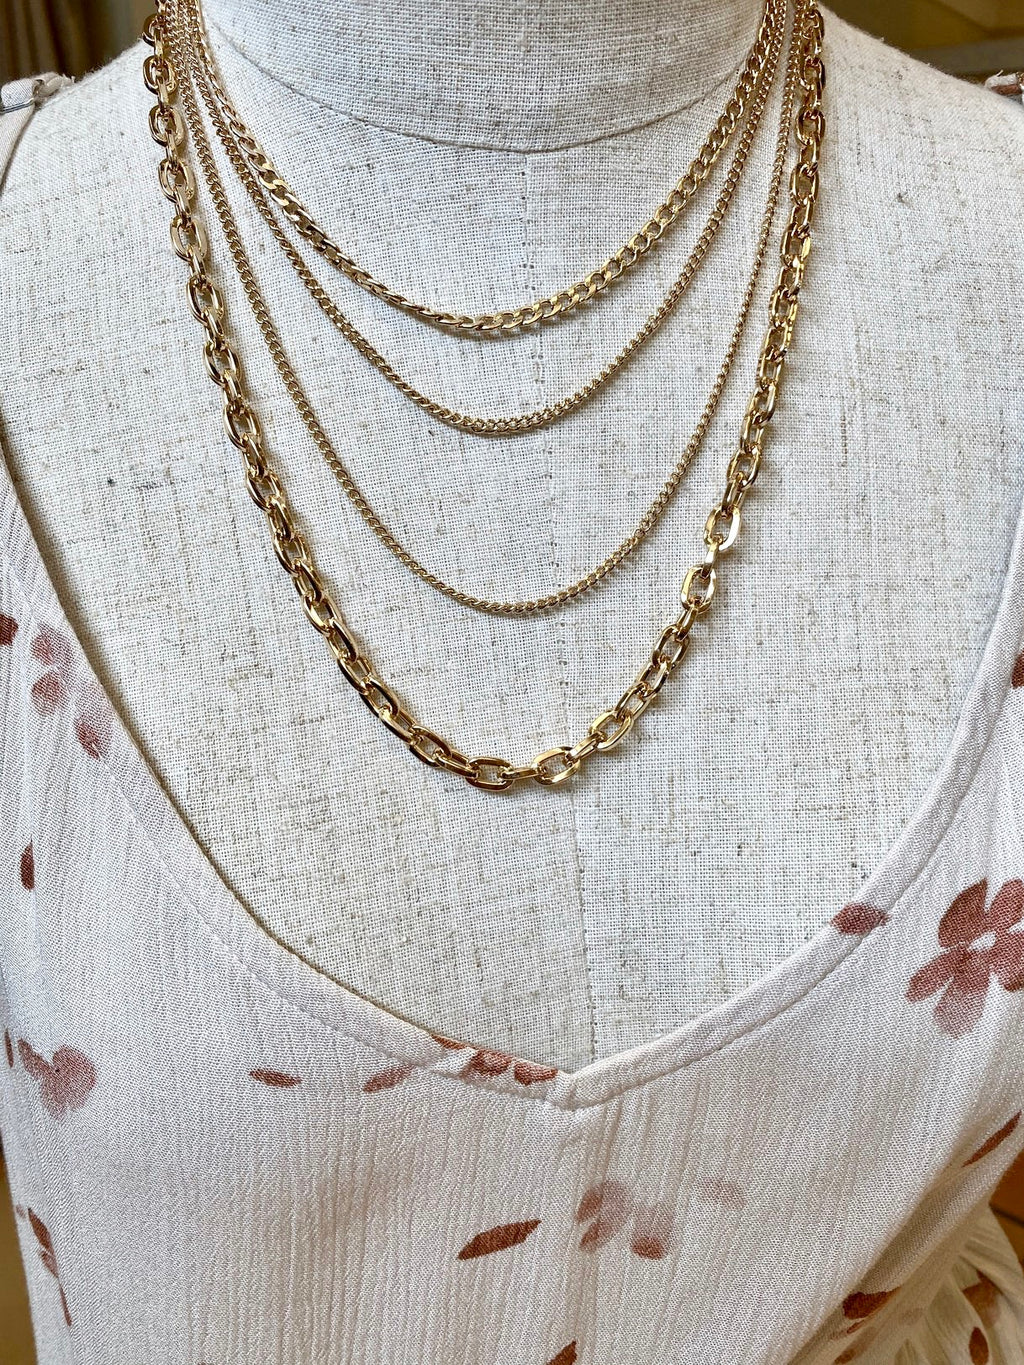 Gold Layered Mixed Chain Necklace